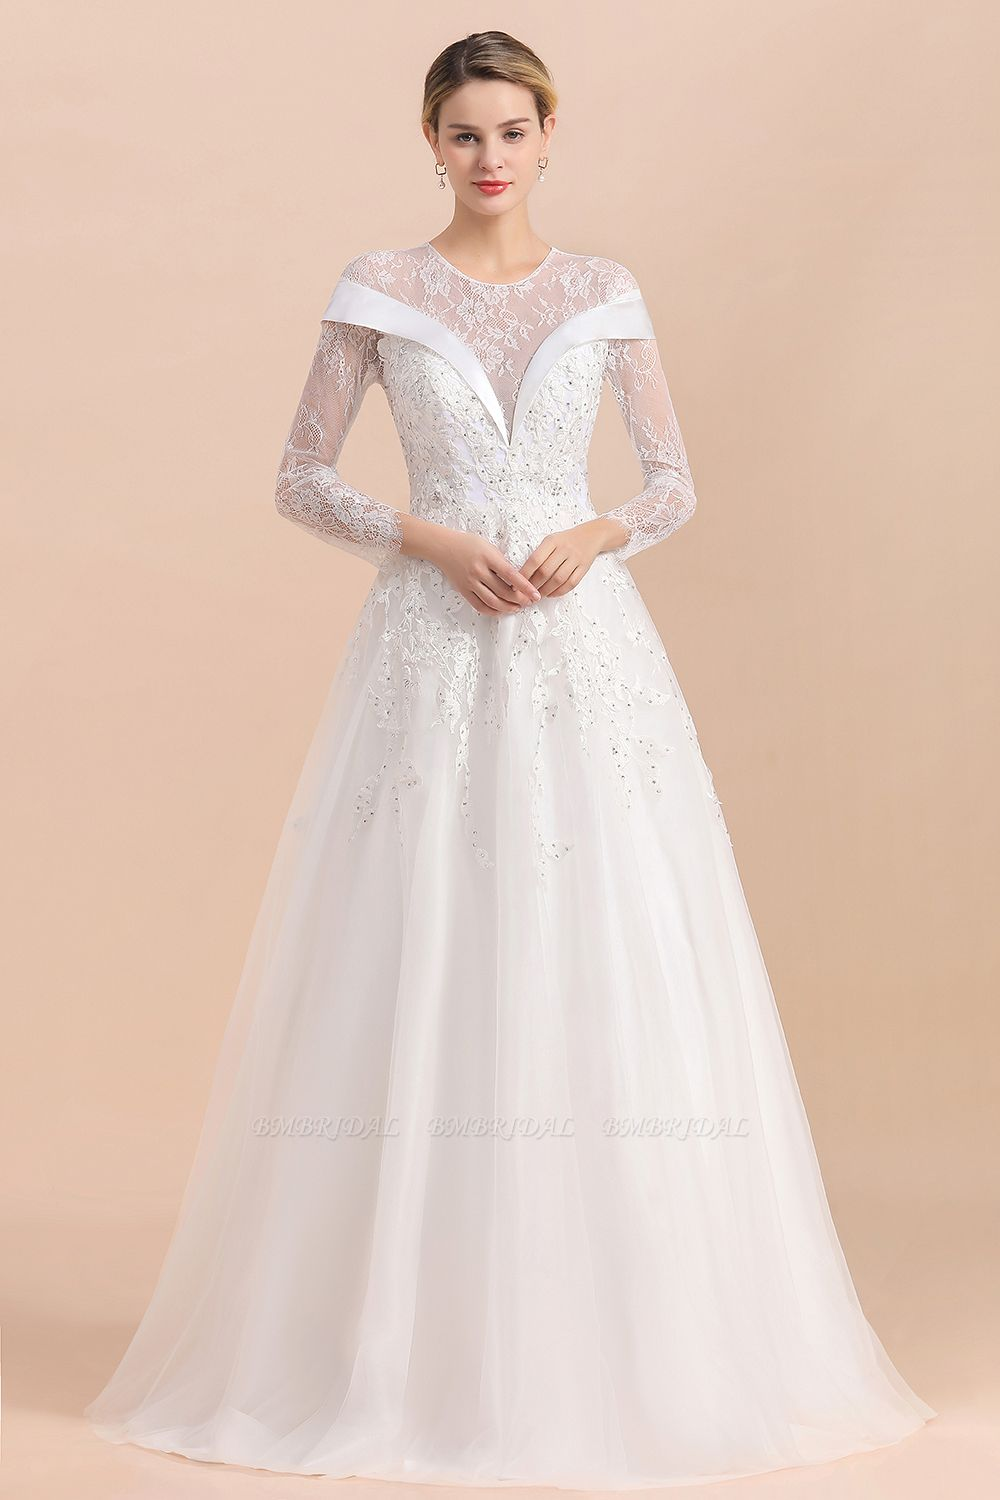 Gorgeous Long Sleeve Lace Wedding Dress Online Appliques Bridal Gowns With Beadings